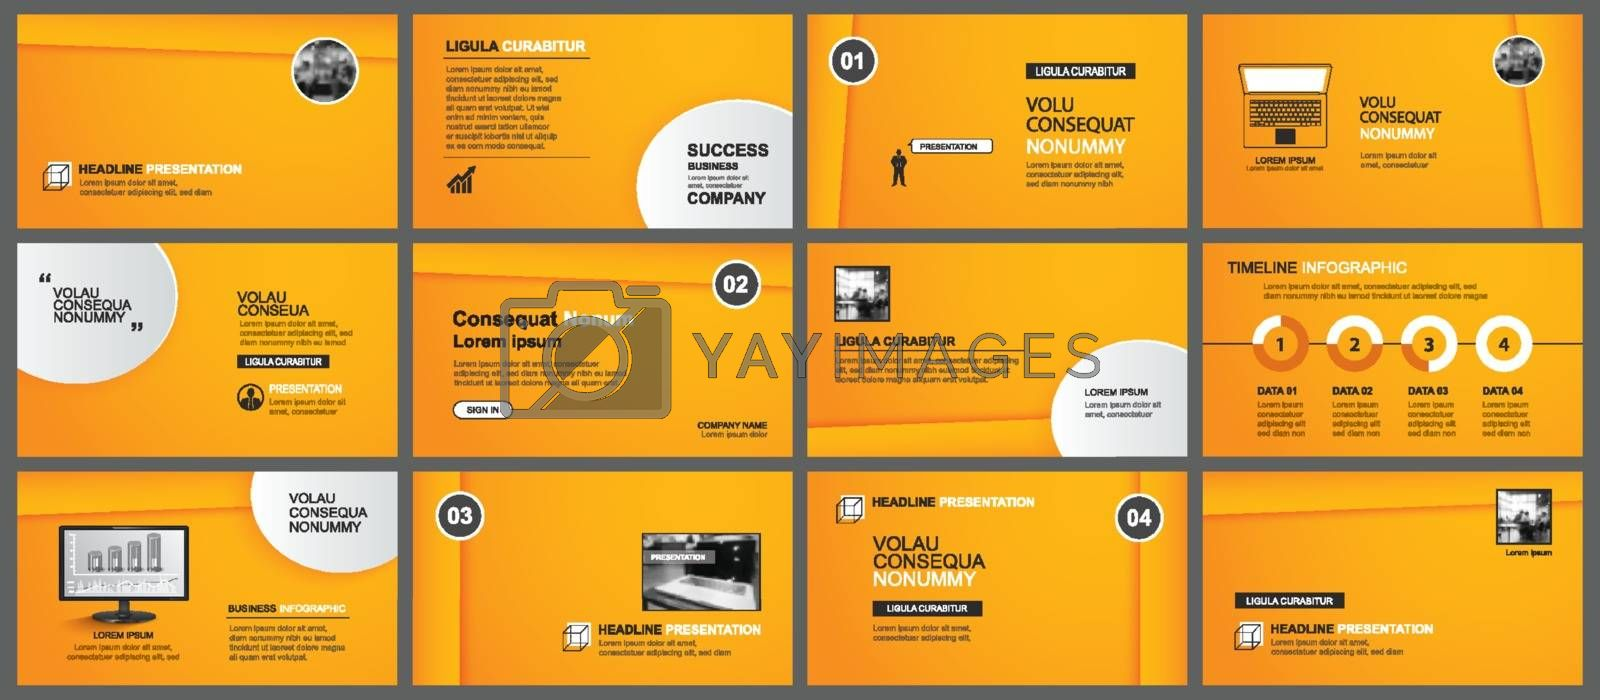 Presentation and slide layout template. Design orange gradient in paper style background. Use for business annual report, keynote, flyer, marketing, leaflet, advertising, brochure.